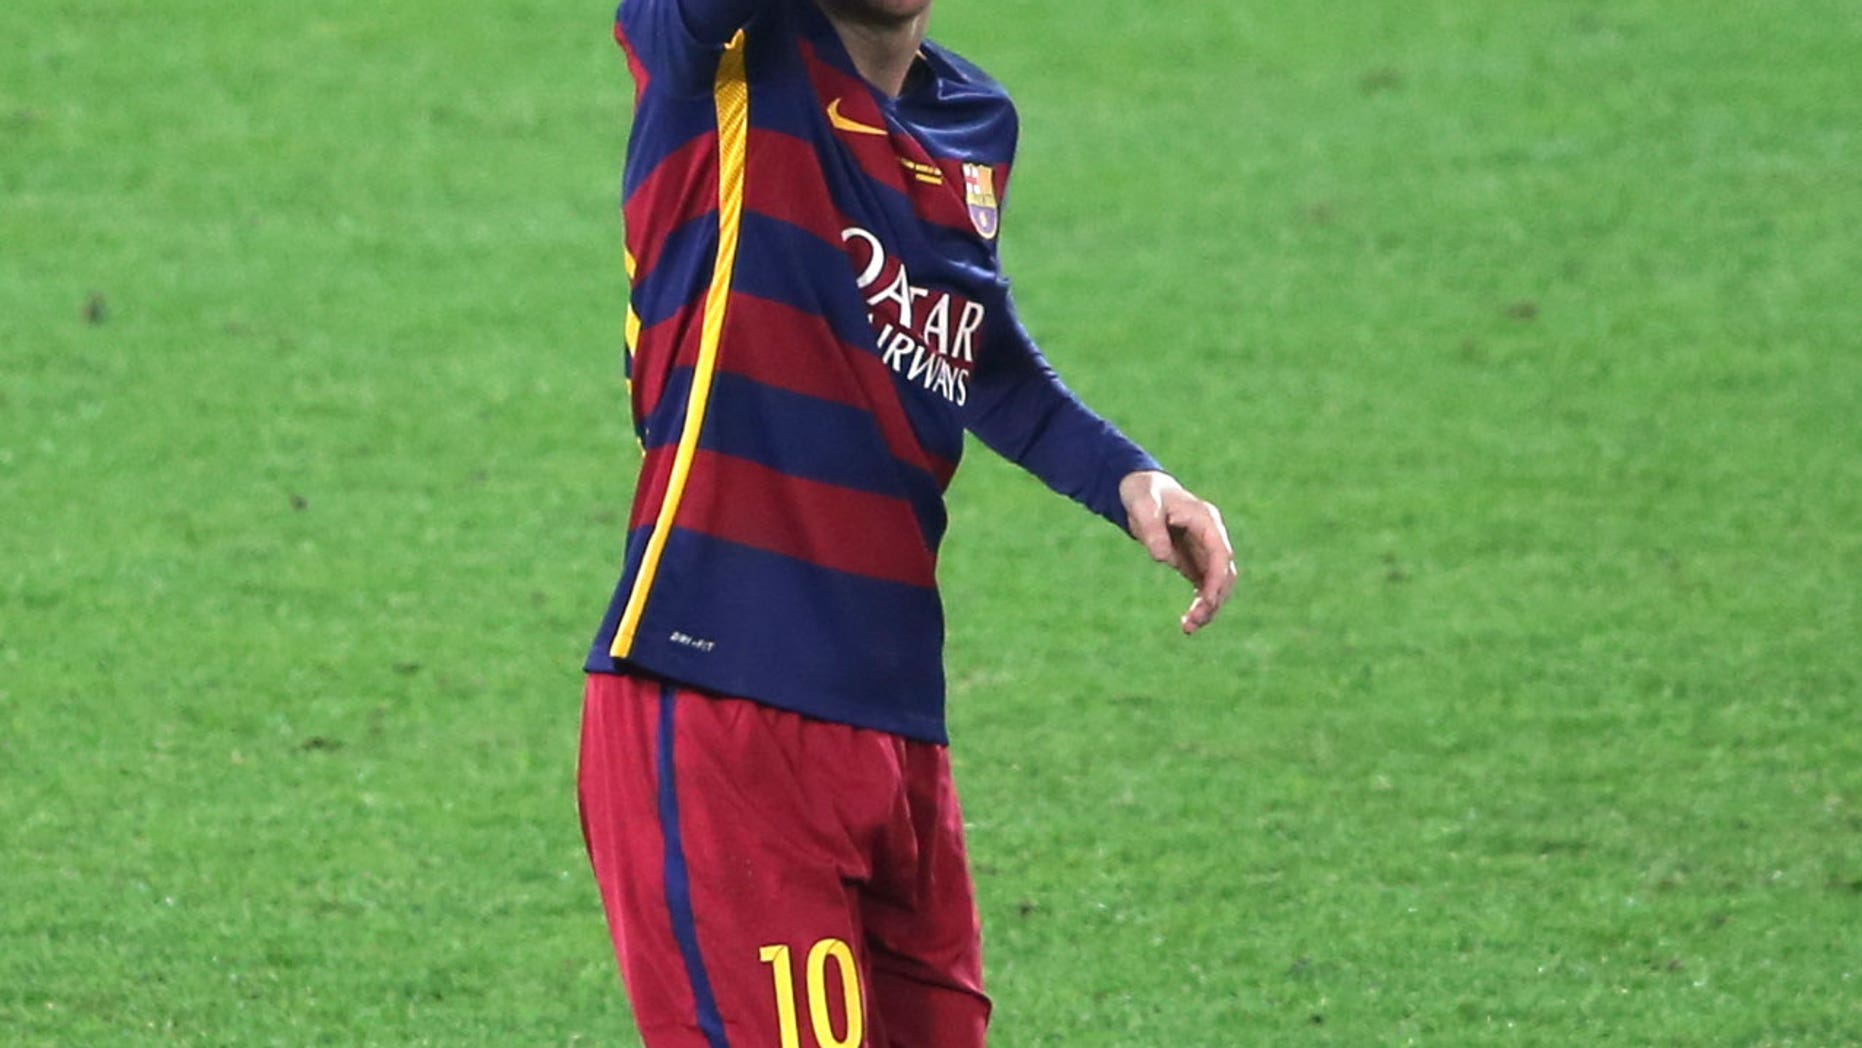 Pictured: Messi, who is probably making this same face right now. (Photo Credit: AP)